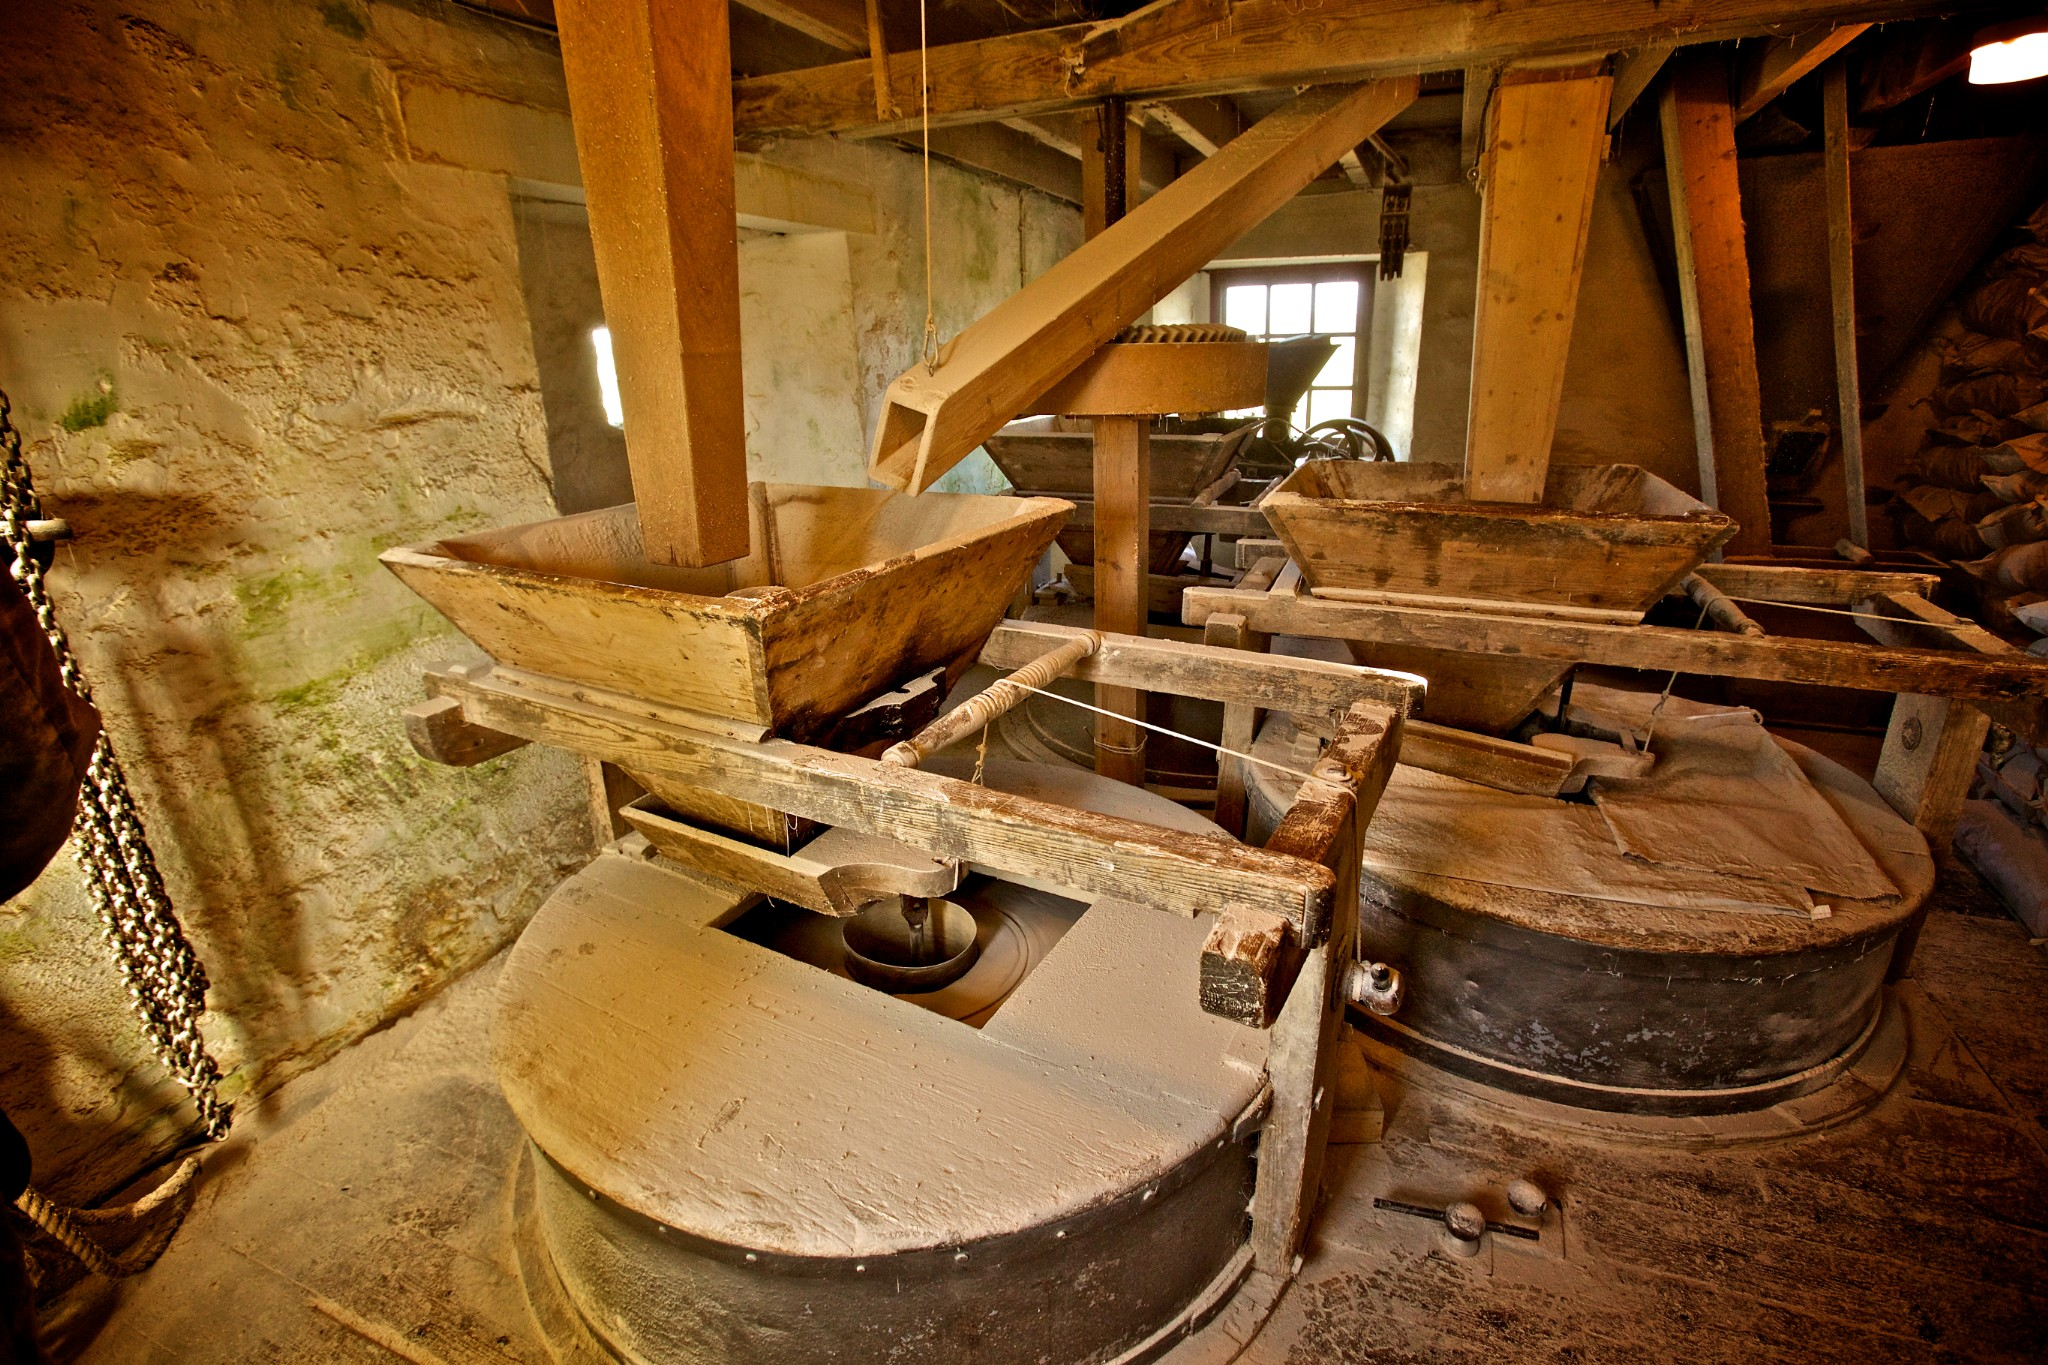 Inside the Barony Mill, Orkney - image by Colin Keldie